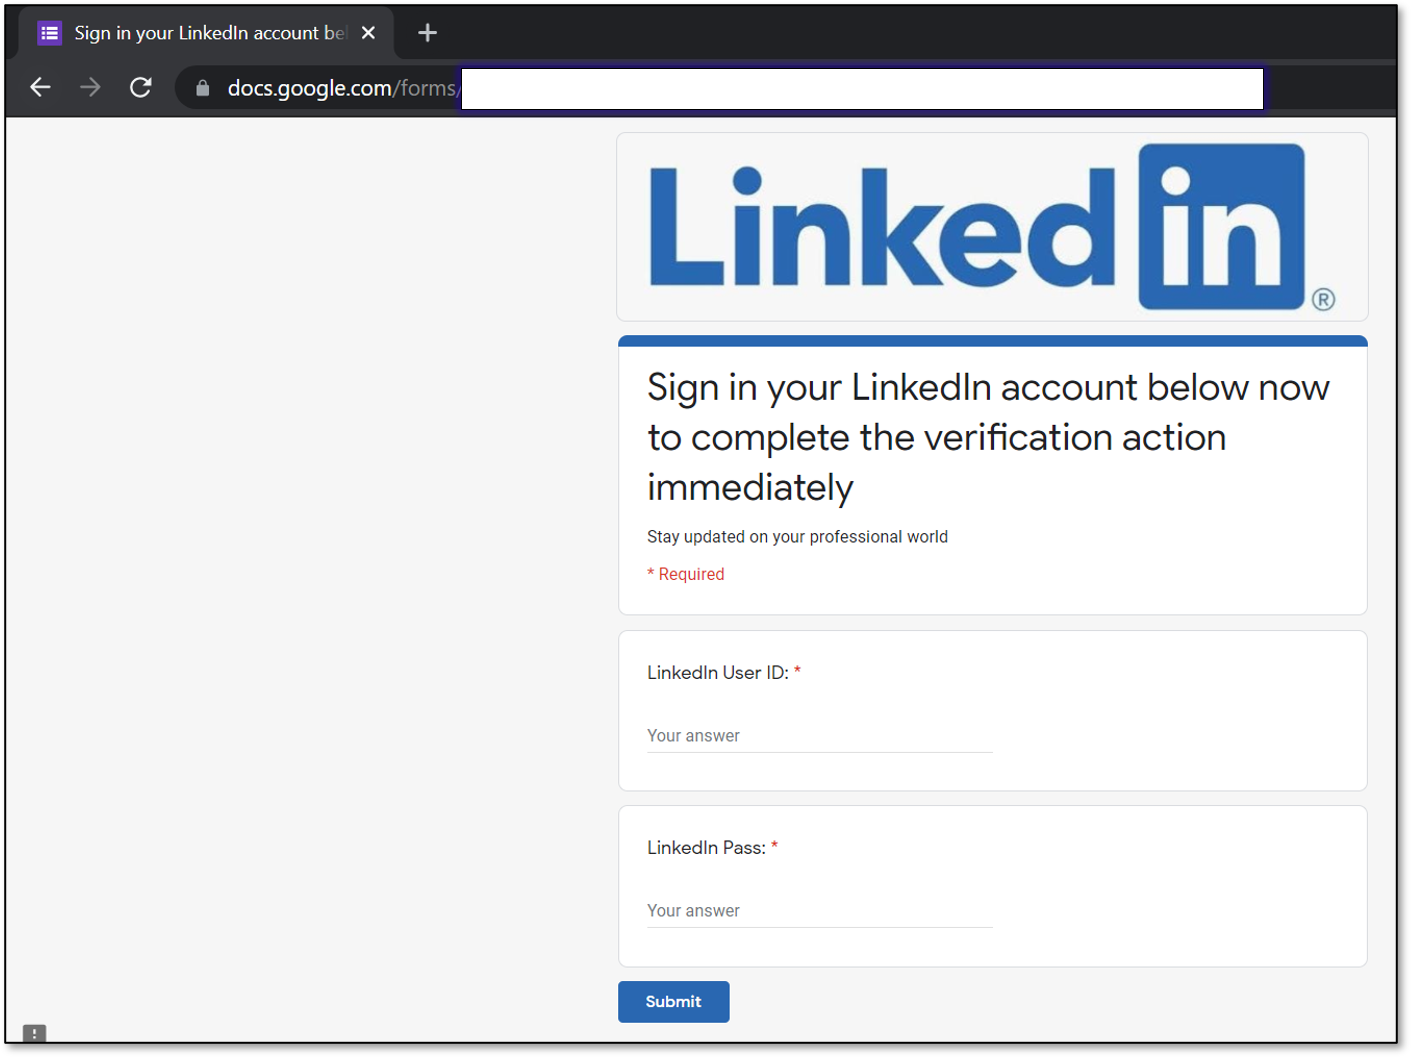 LinkedIn phishing page hosted on Google Forms